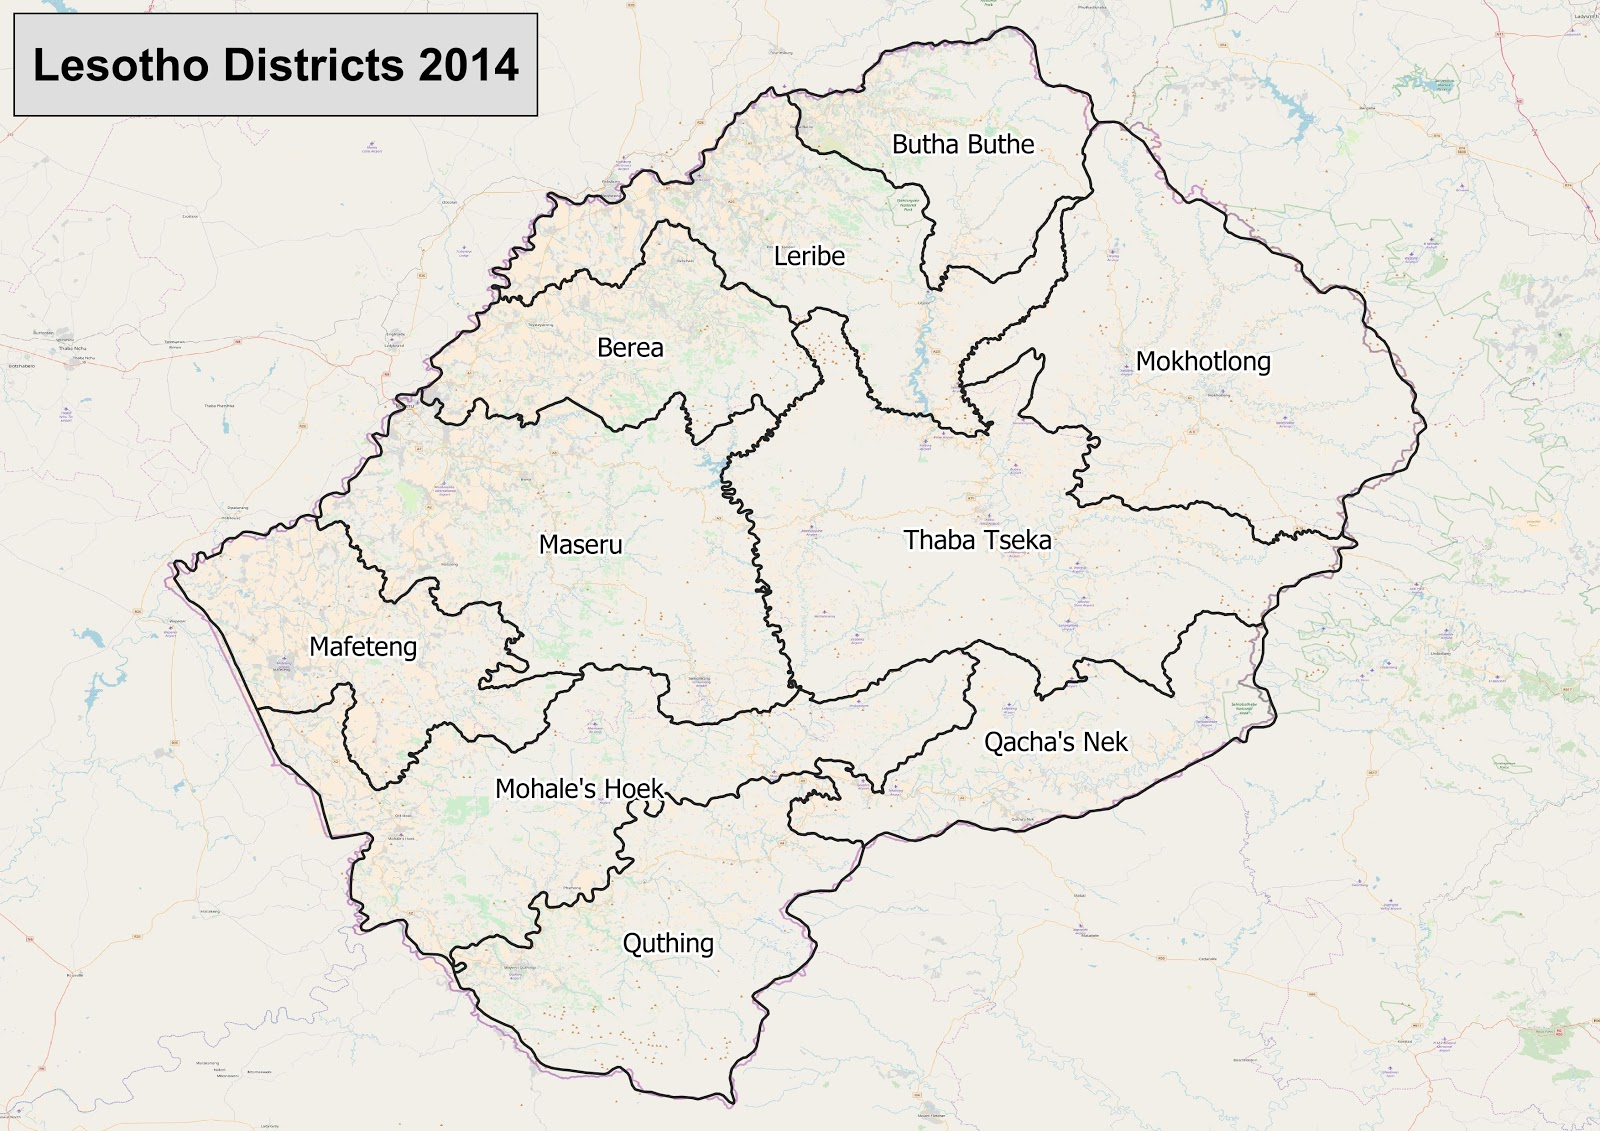 Lesotho districts